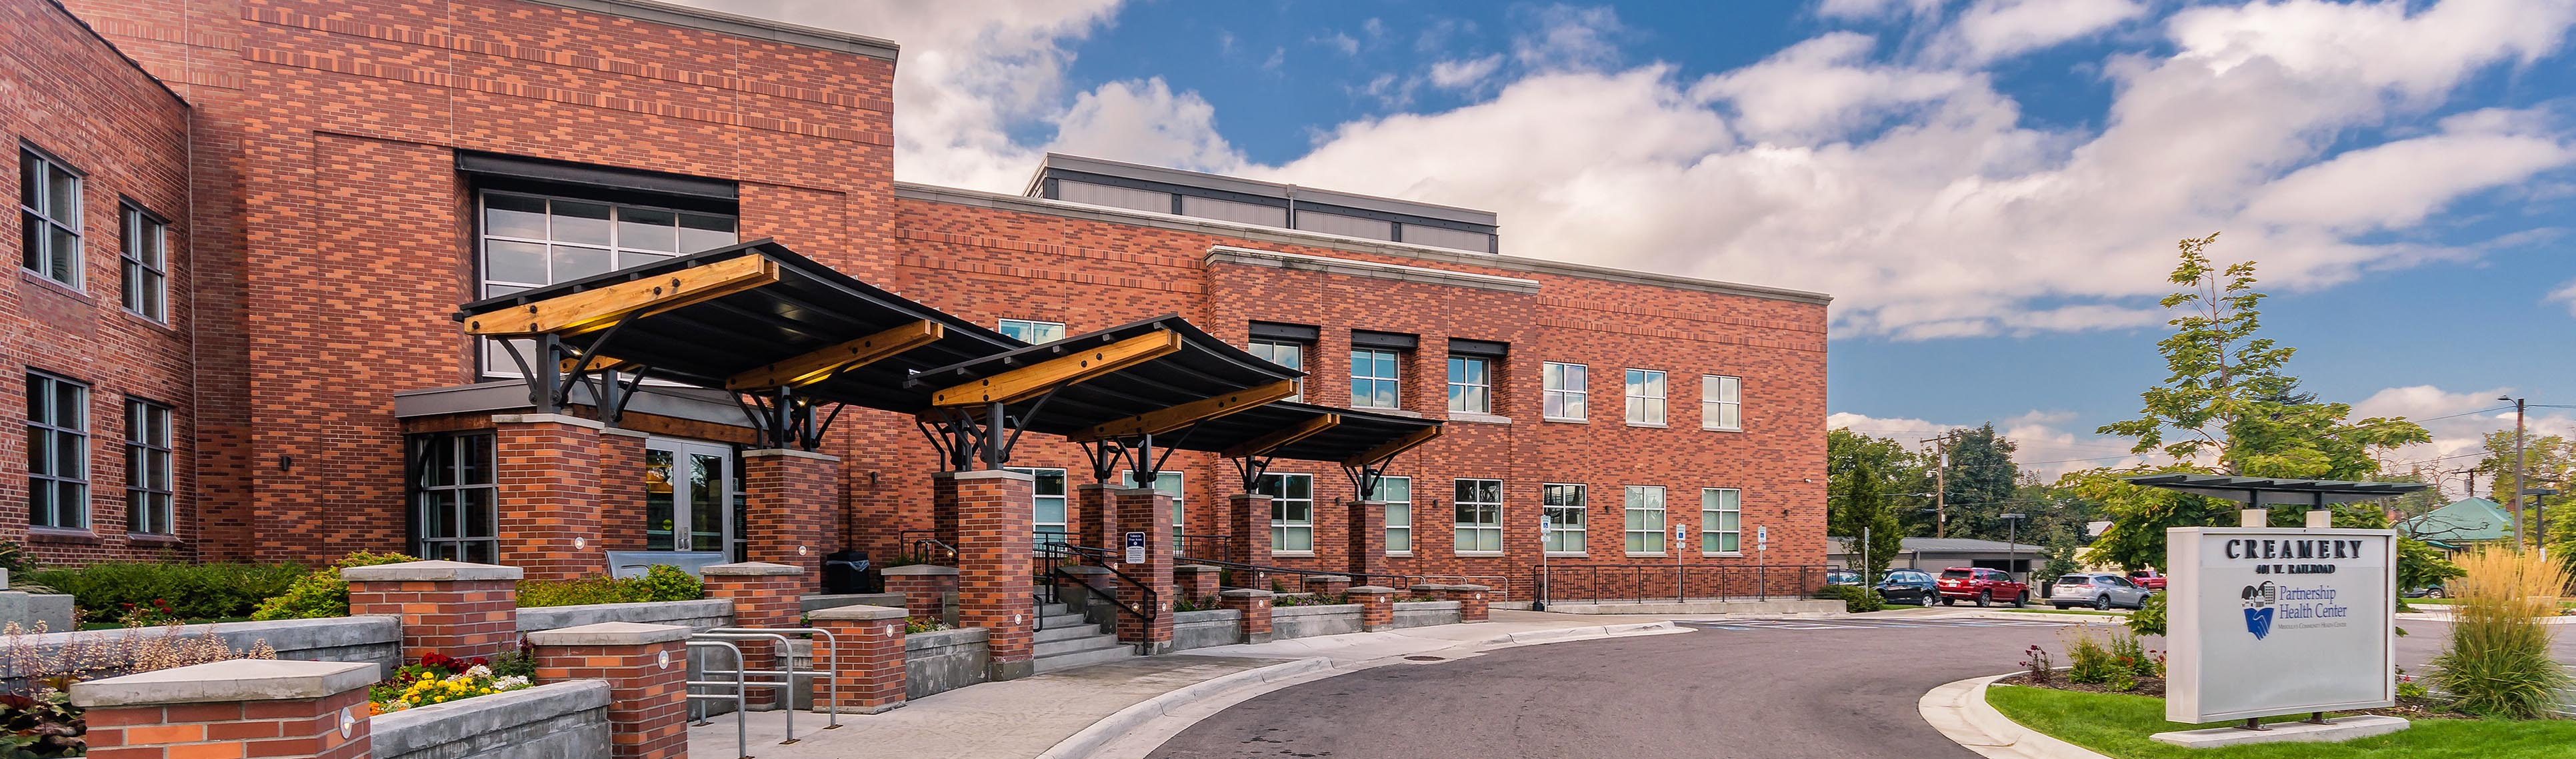 Partnership Health Center, Missoula Montana